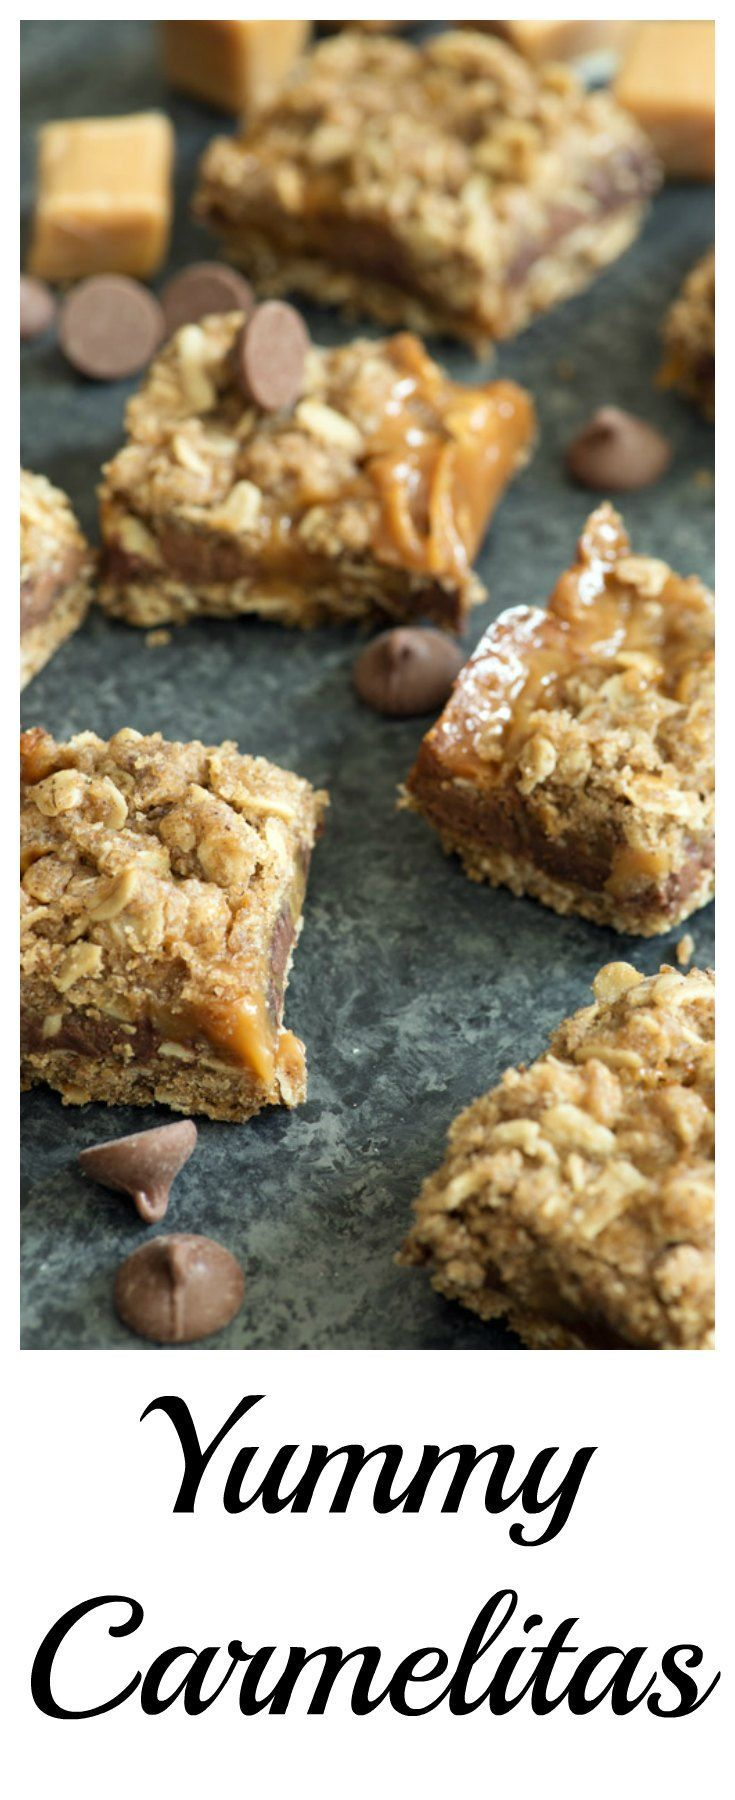 Make a batch of Carmelitas to take back to school and your college student will be singing your praises after a few weeks of dorm food. Yummy caramel with chocolate chips and some oatmeal to hold it all together, and of course some browned butter. |butterandbaggage.com #yum #recipeoftheday #dessert